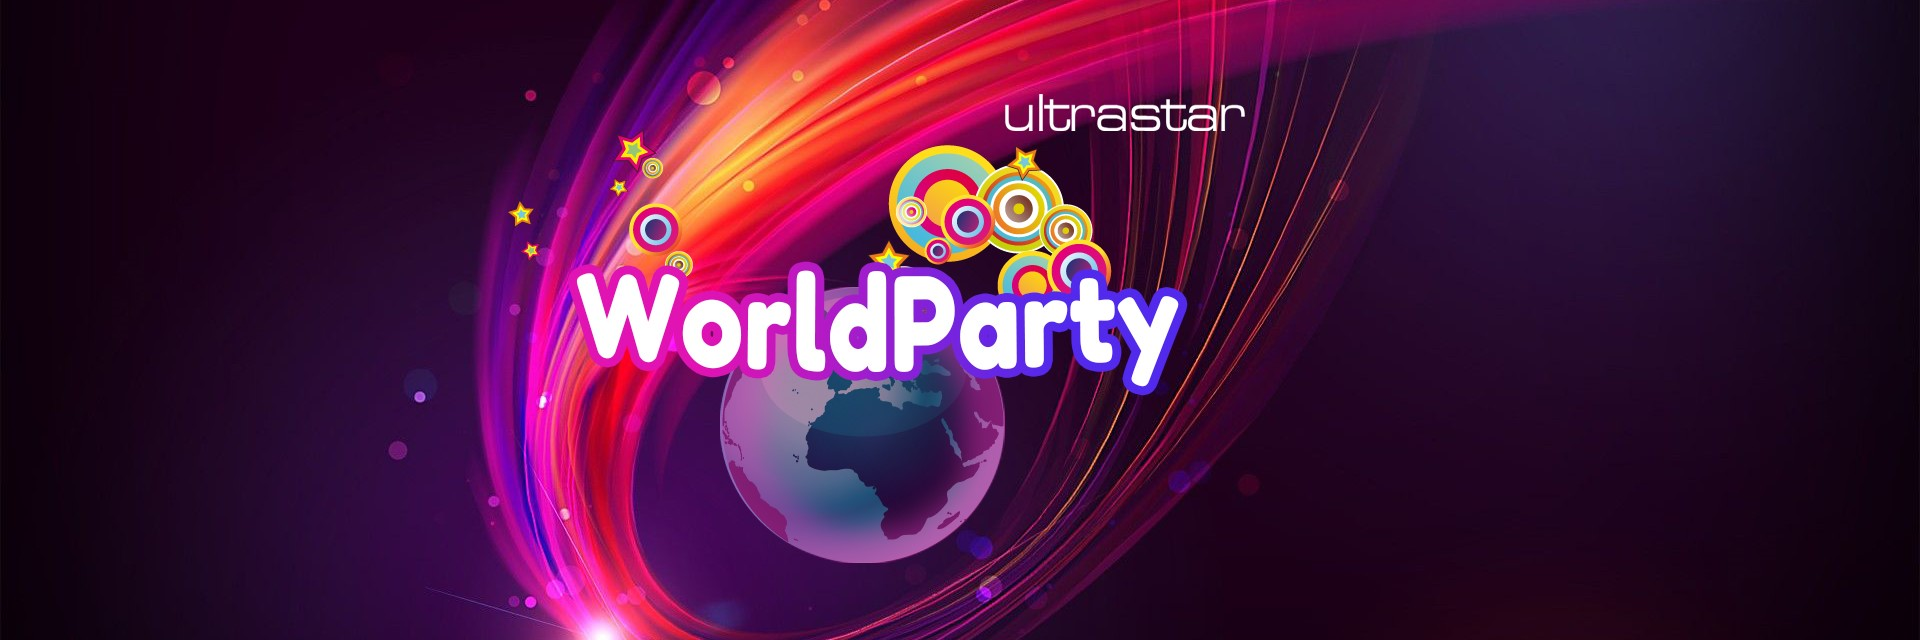 UltraStar WorldParty banner